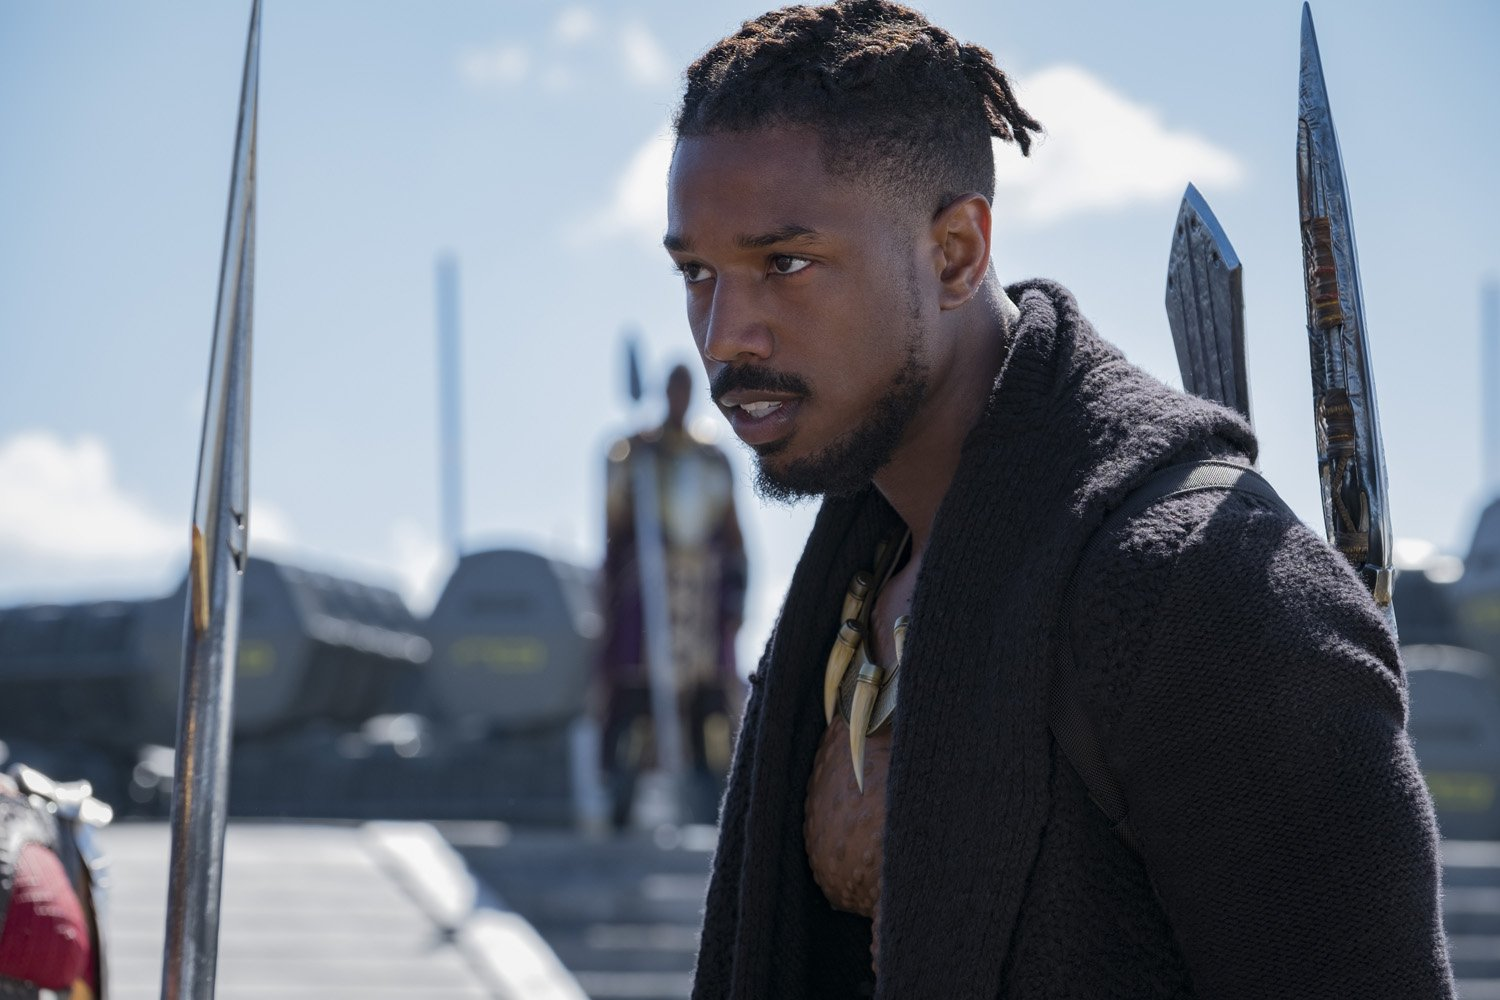 Photo du film Black Panther réalisé par Ryan Coogler avec Killmonger (Michael B. Jordan)